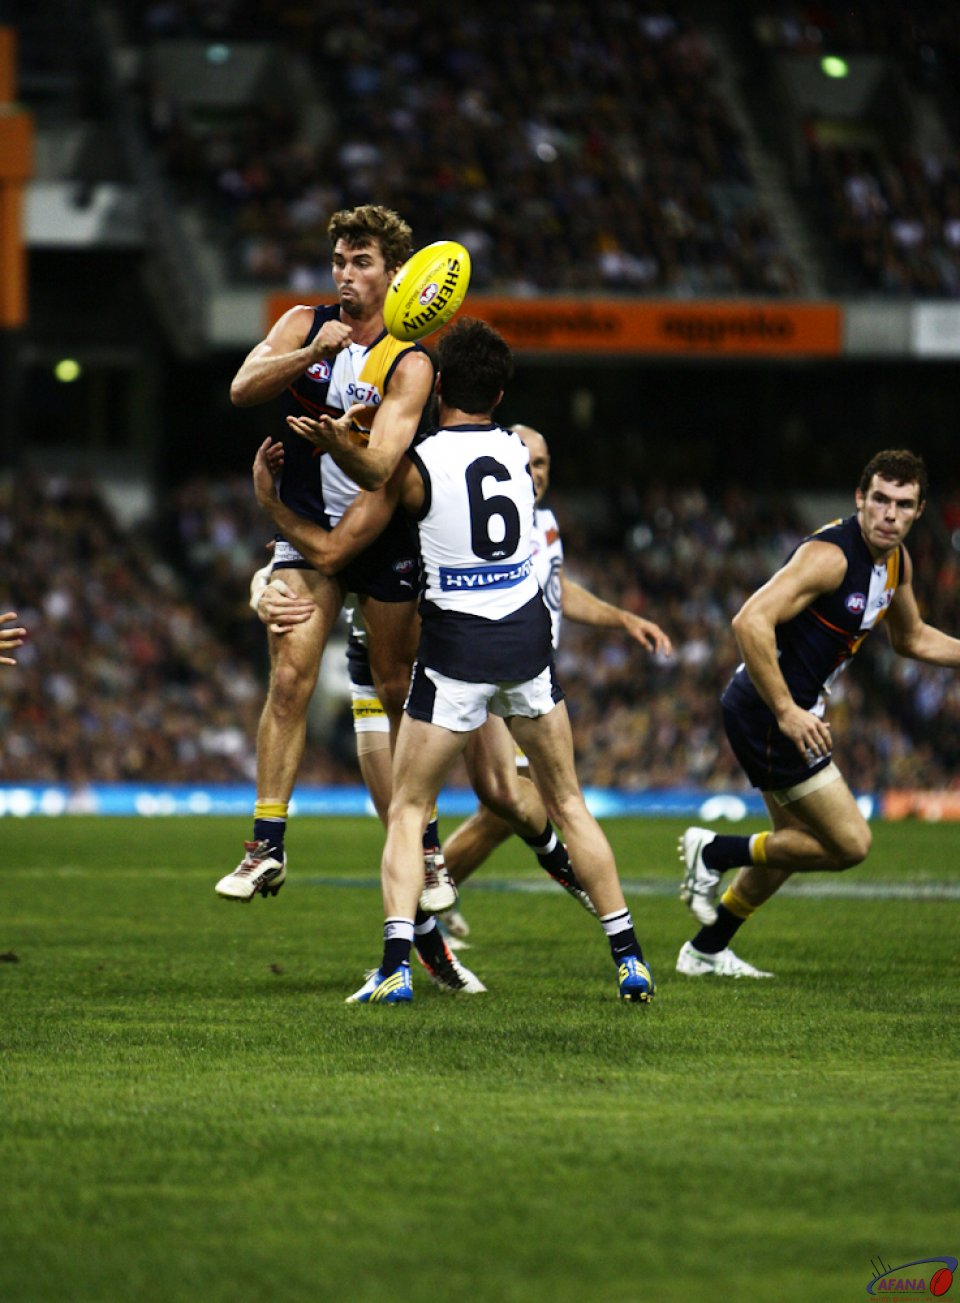 Cripps With Ball